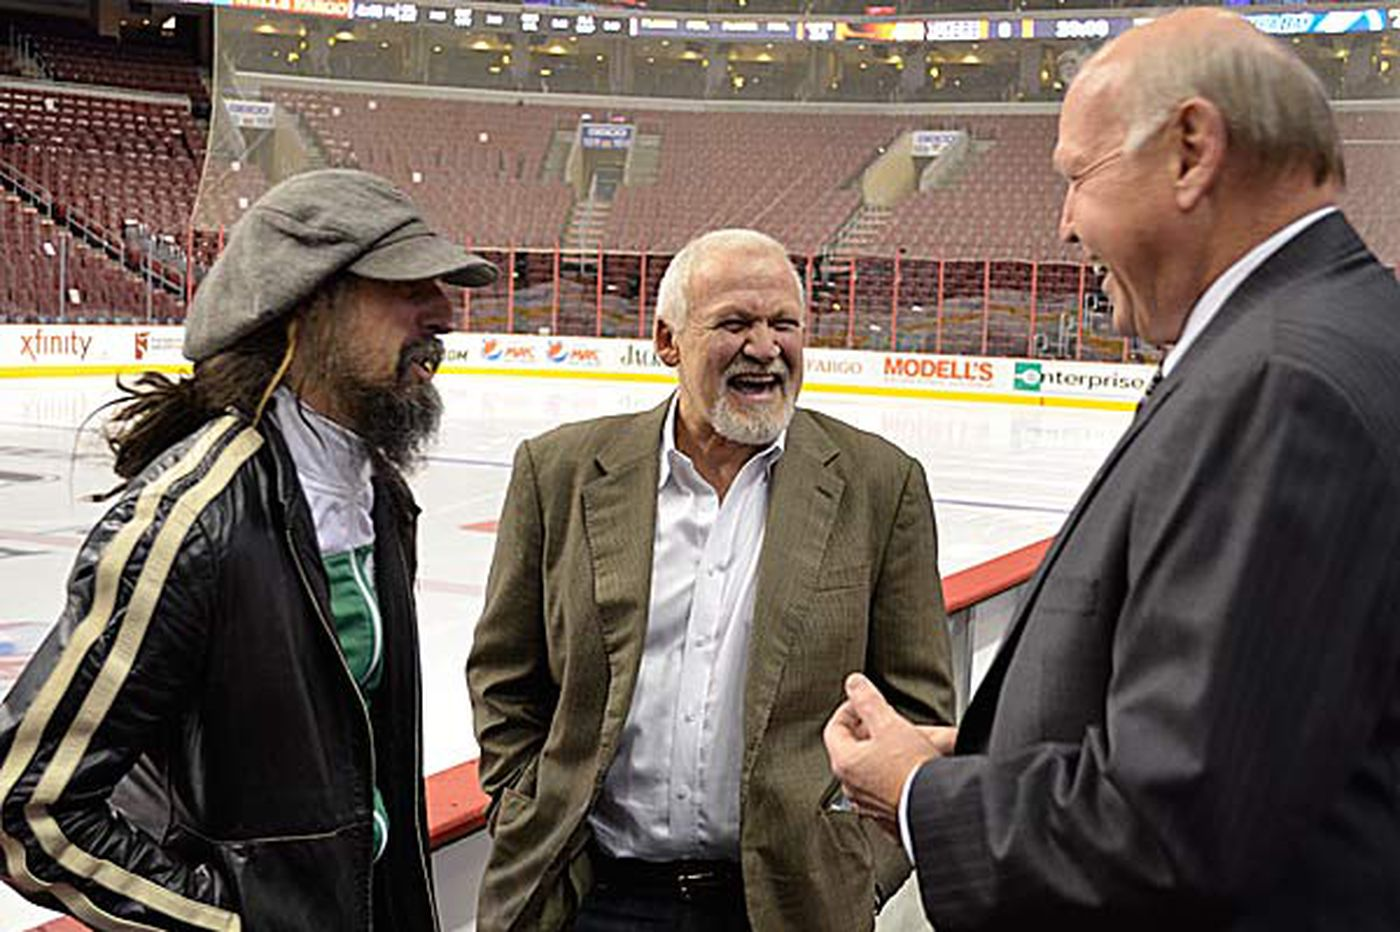 Flyers Notes: Director Rob Zombie talks about Broad Street Bullies movie